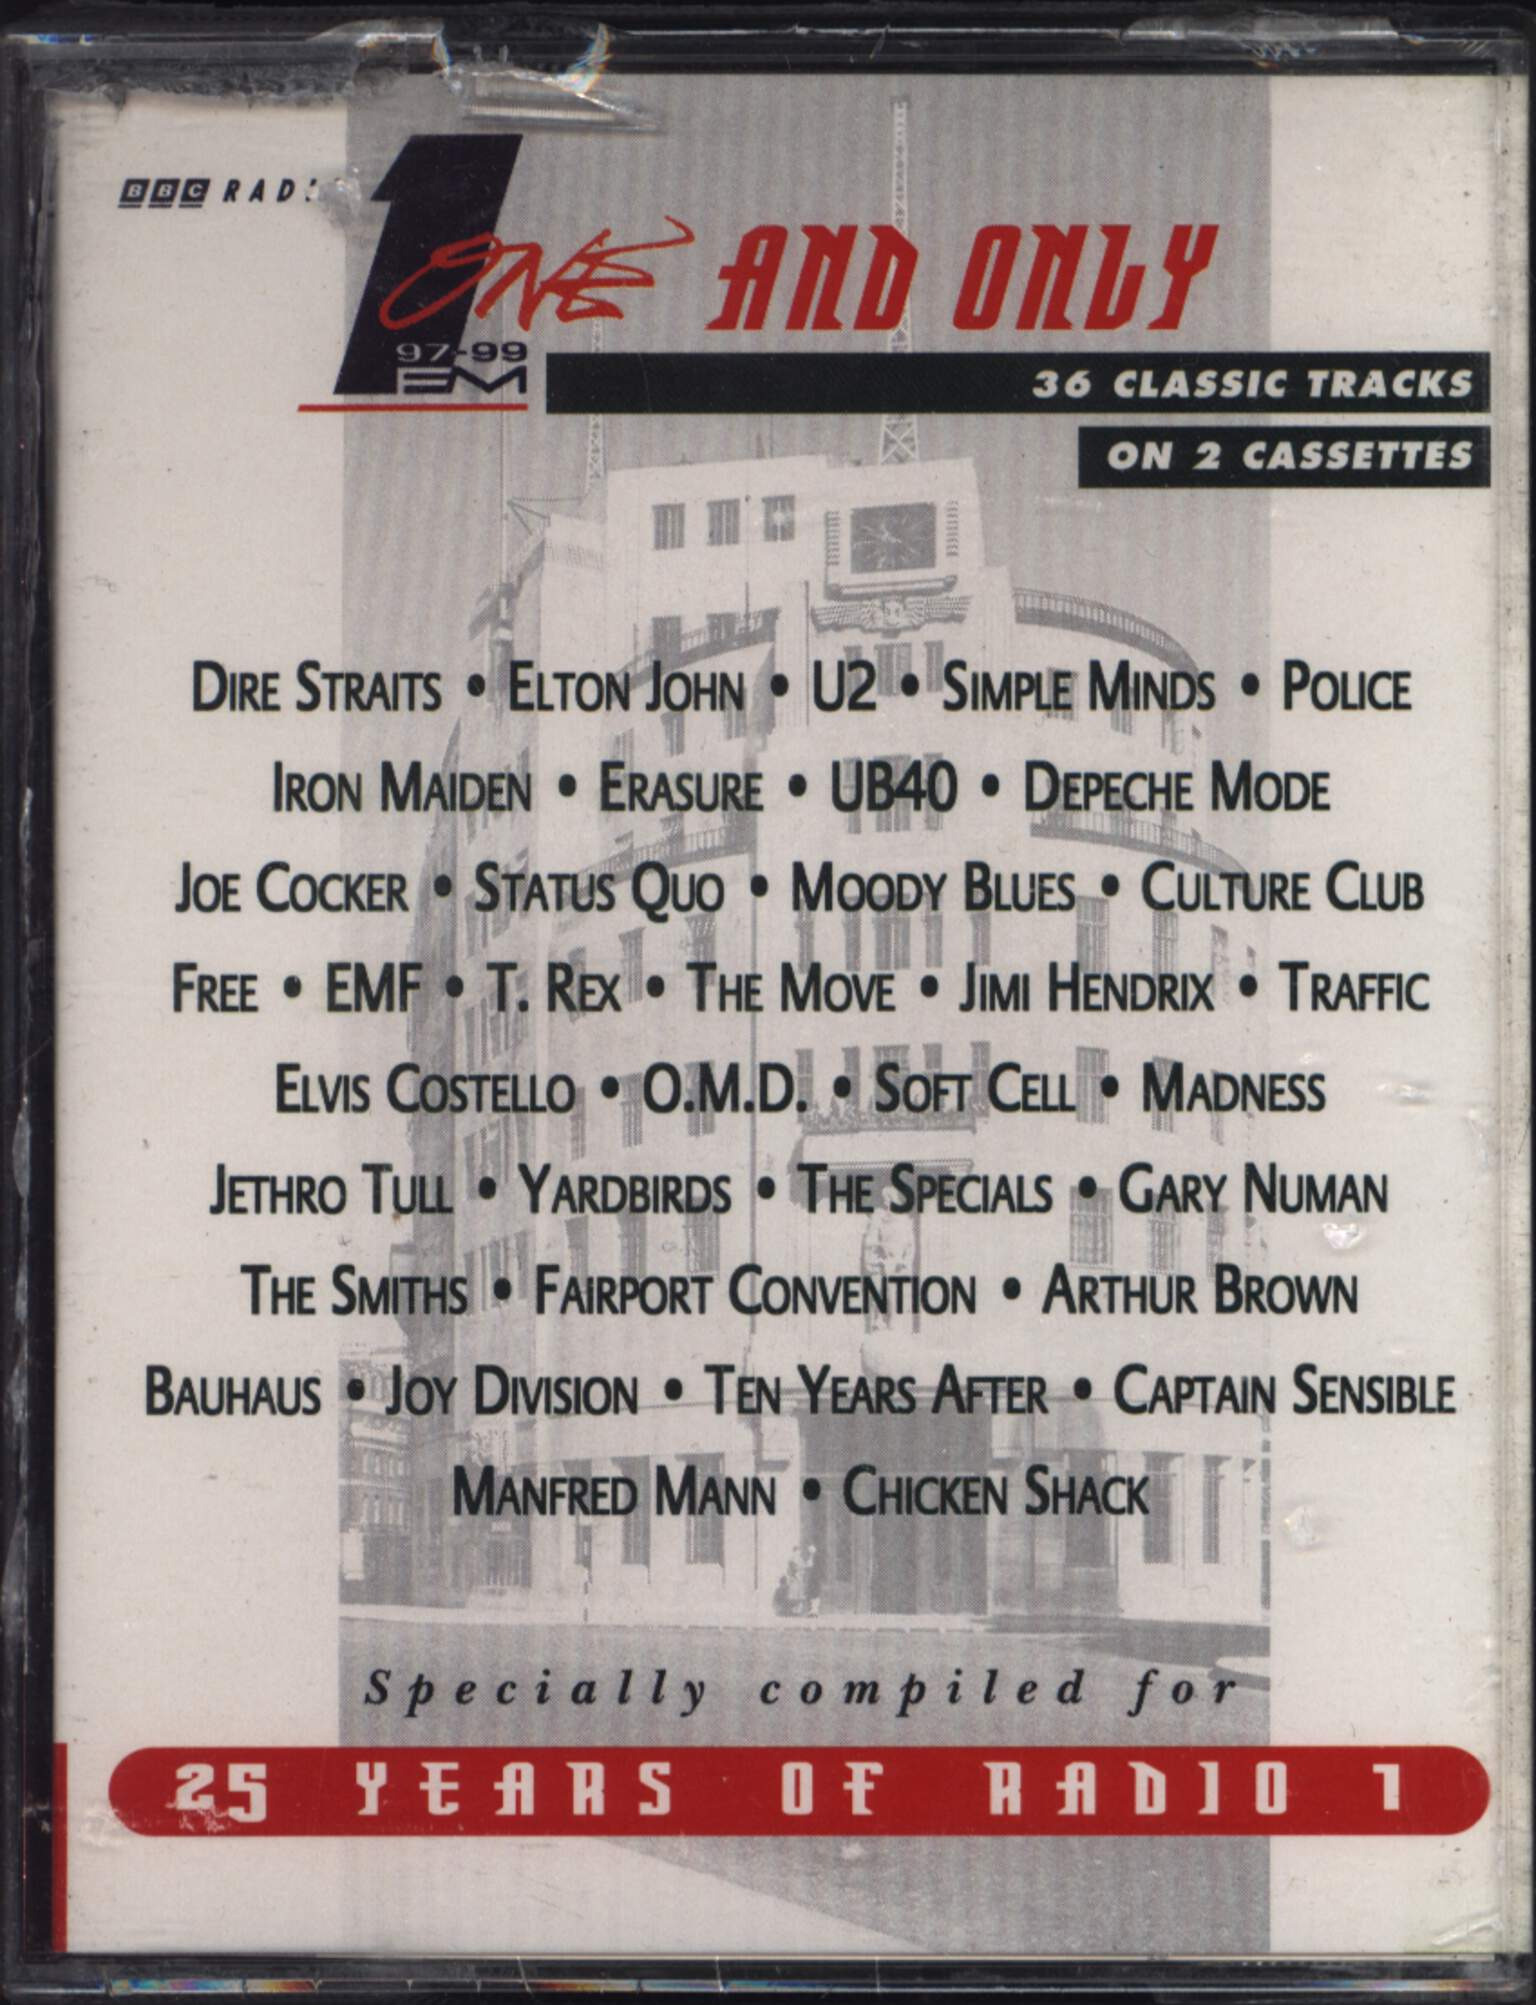 Various: 1 And Only - 25 Years Of Radio 1, Compact Cassette